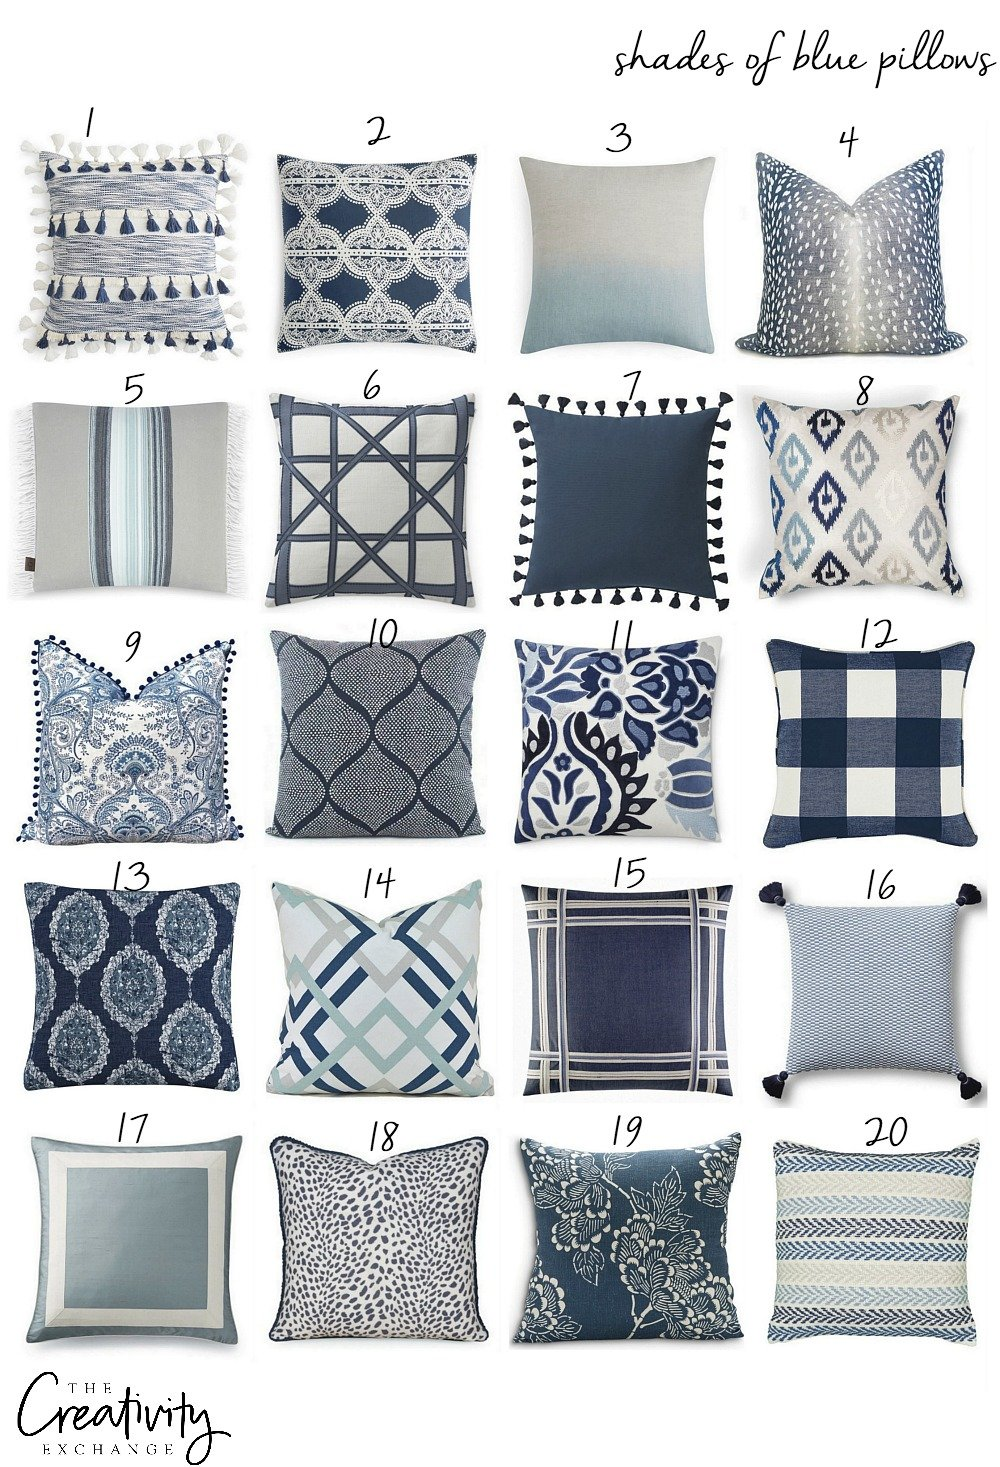 Tips for mixing pillow patterns and colors.